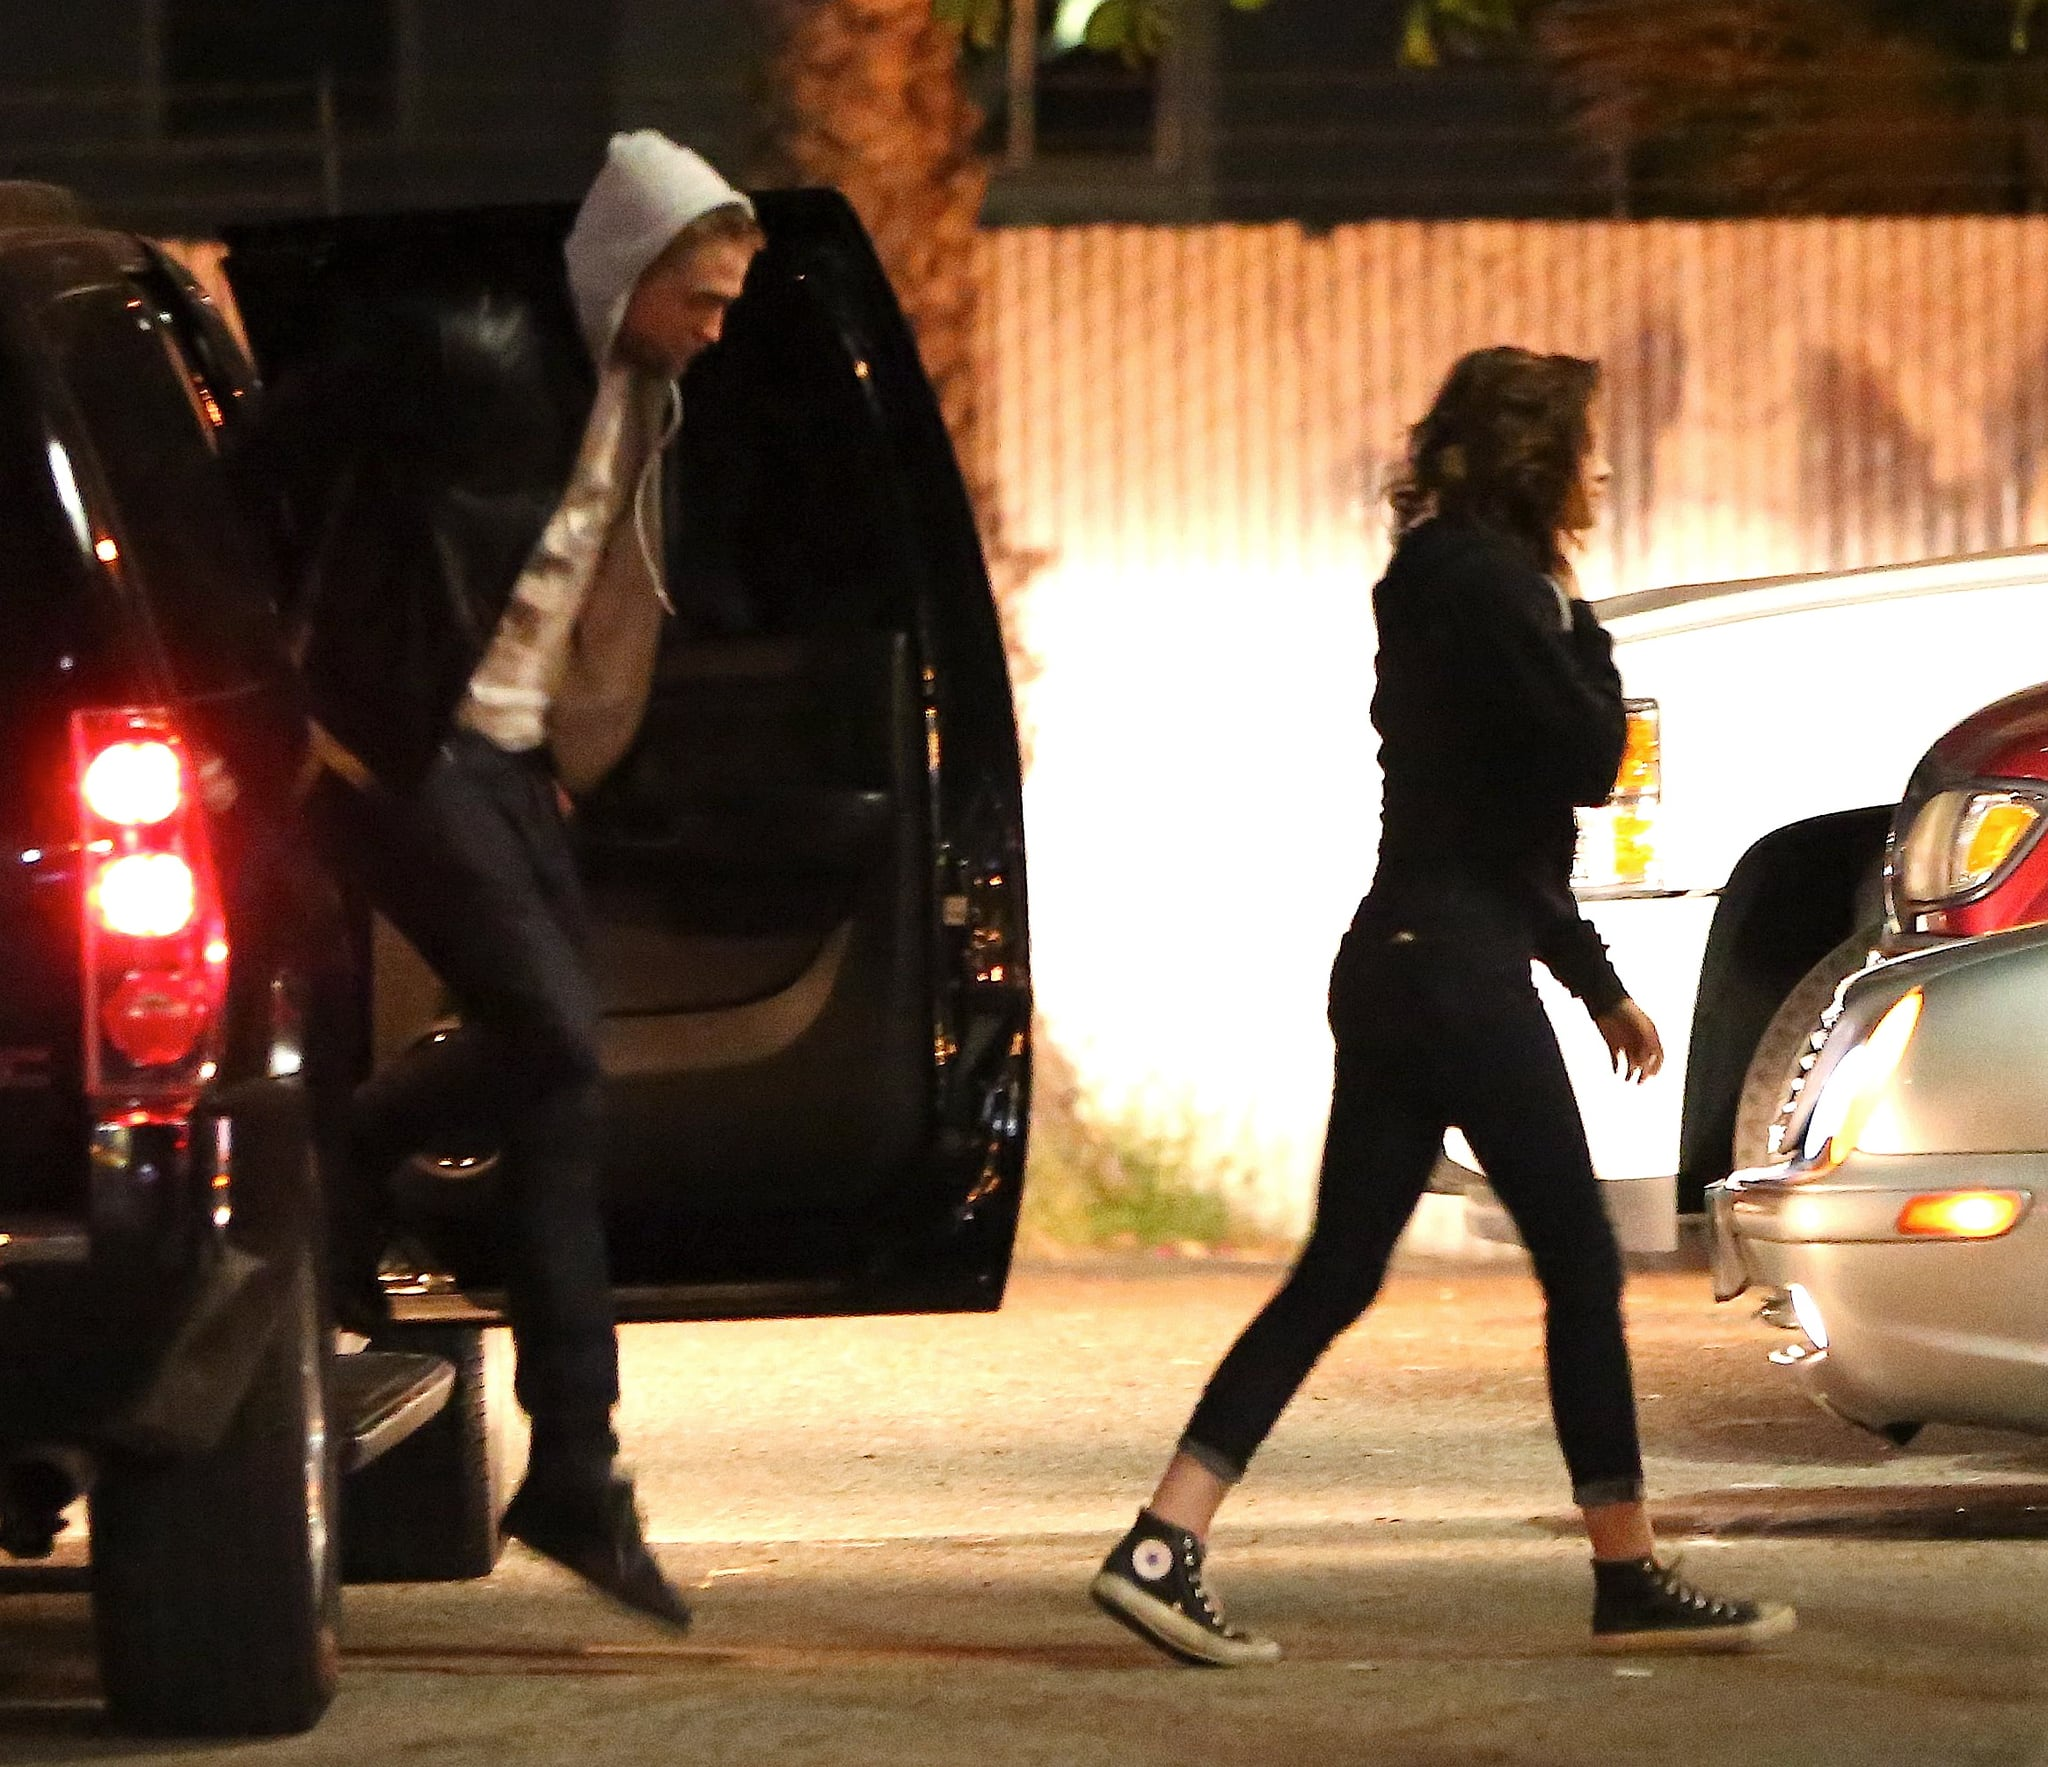 Robert Pattinson and Kristen Stewart arrived at Malo together.